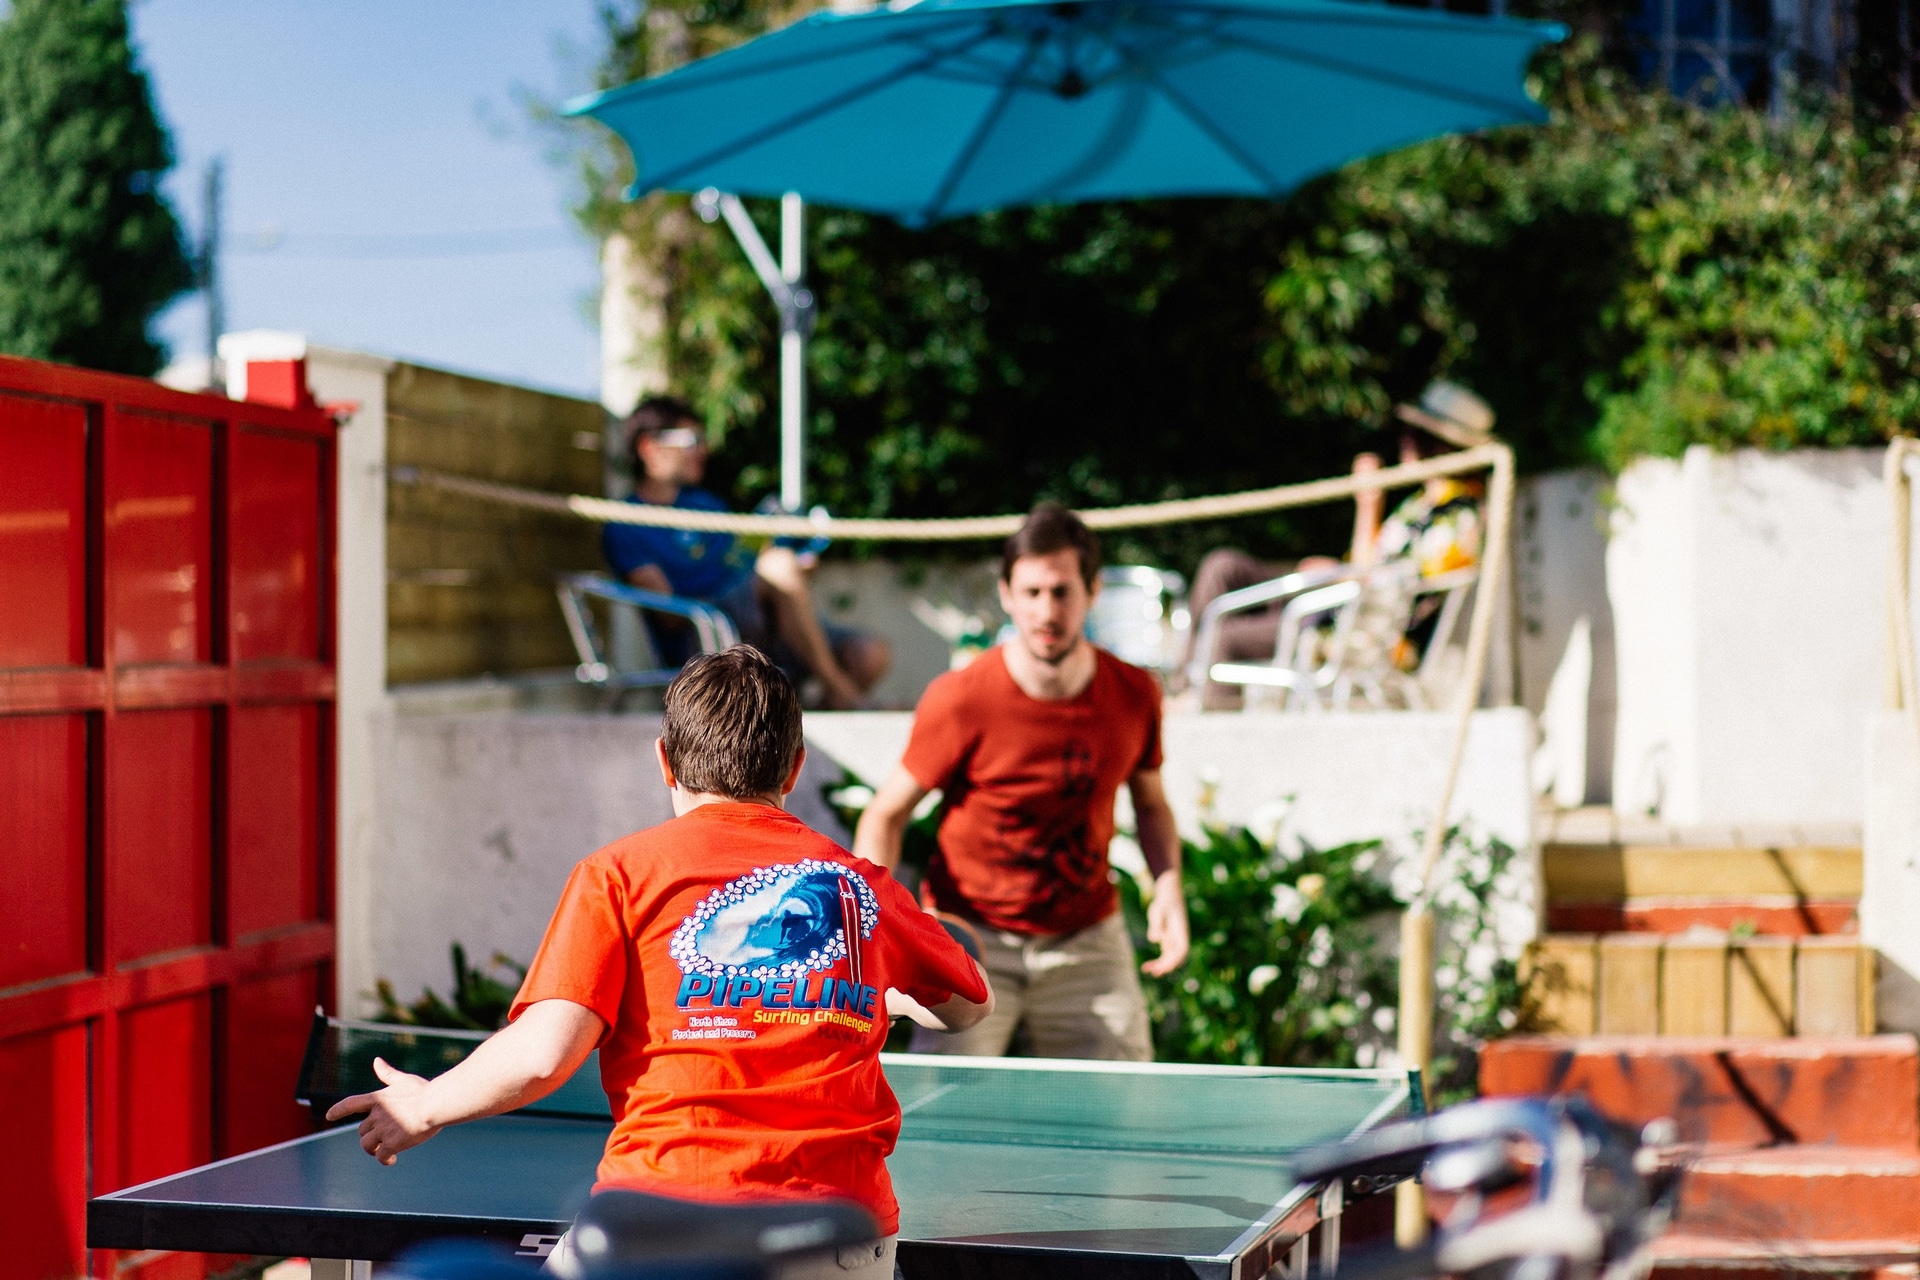 nami-house-anglet-pingpong-players